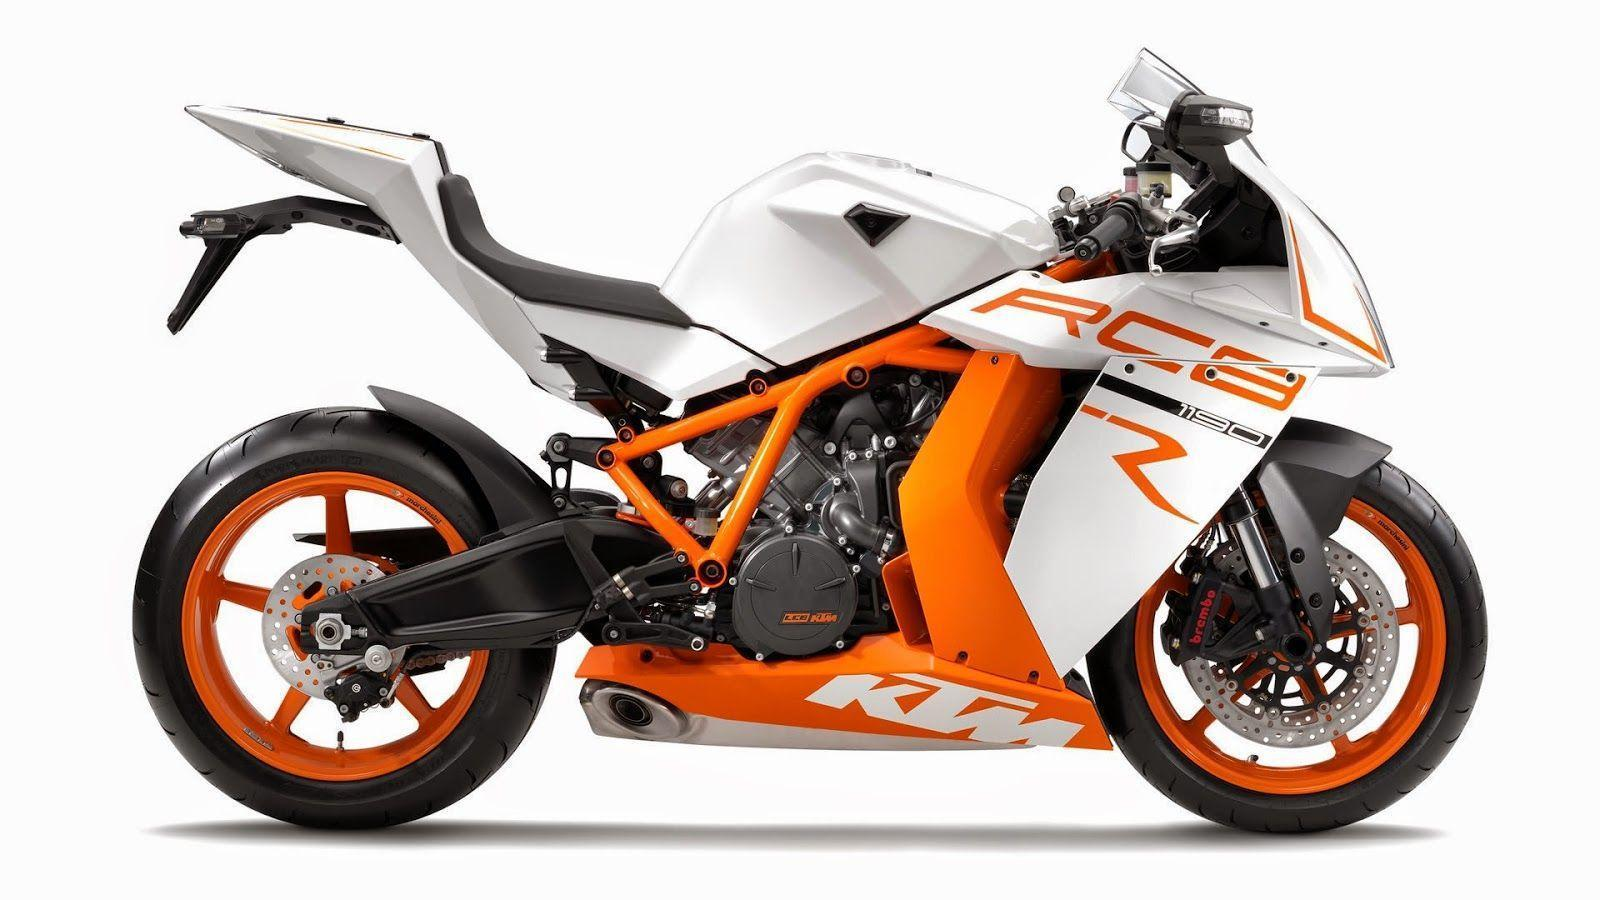 Images for 2016 KTM RC 390 HD - All Latest New & Old Car Hd Image ...